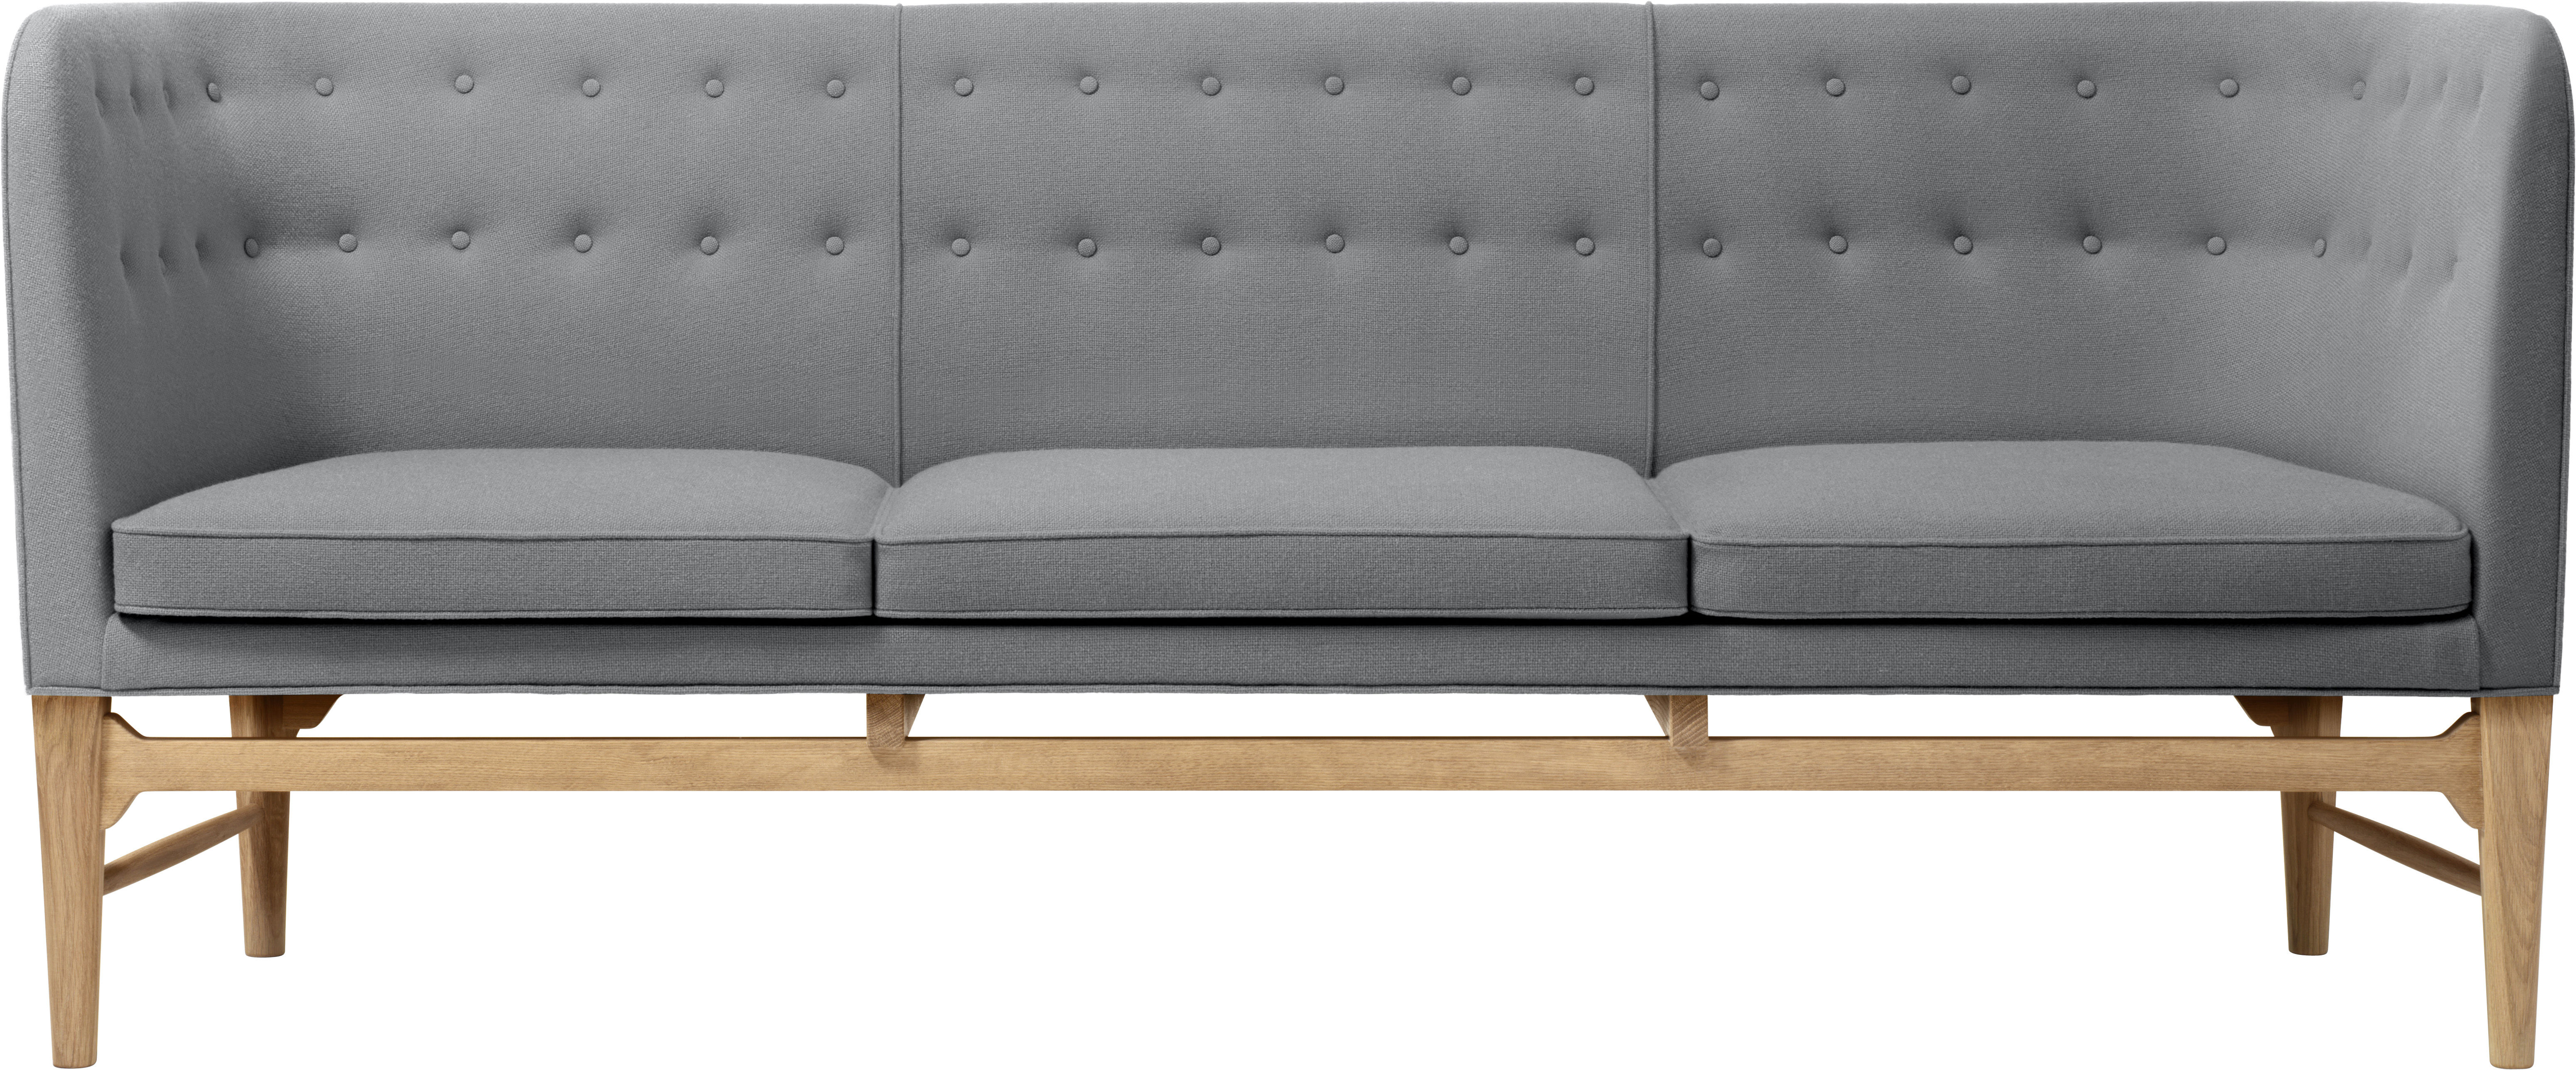 mayor sofa straight sofa 3 seats arne jacobsen 1939 grey by tradition. Black Bedroom Furniture Sets. Home Design Ideas